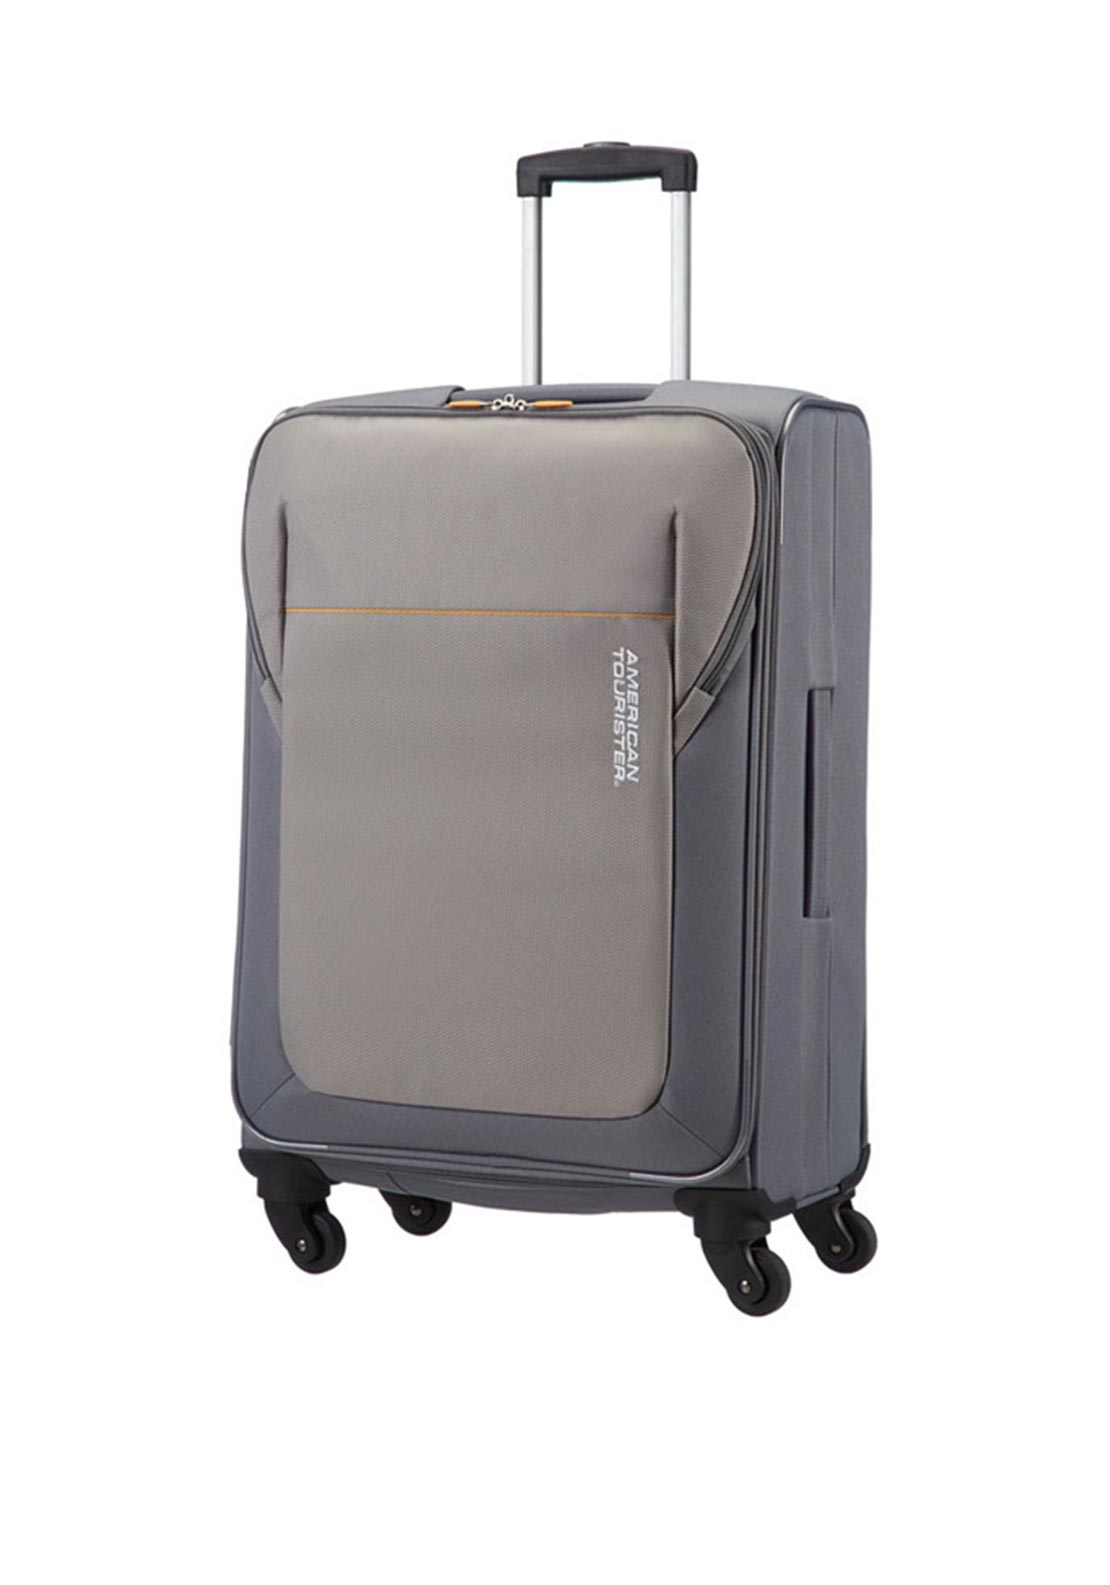 American Tourister San Francisco Spinner Medium 66cm Suitcase, Grey